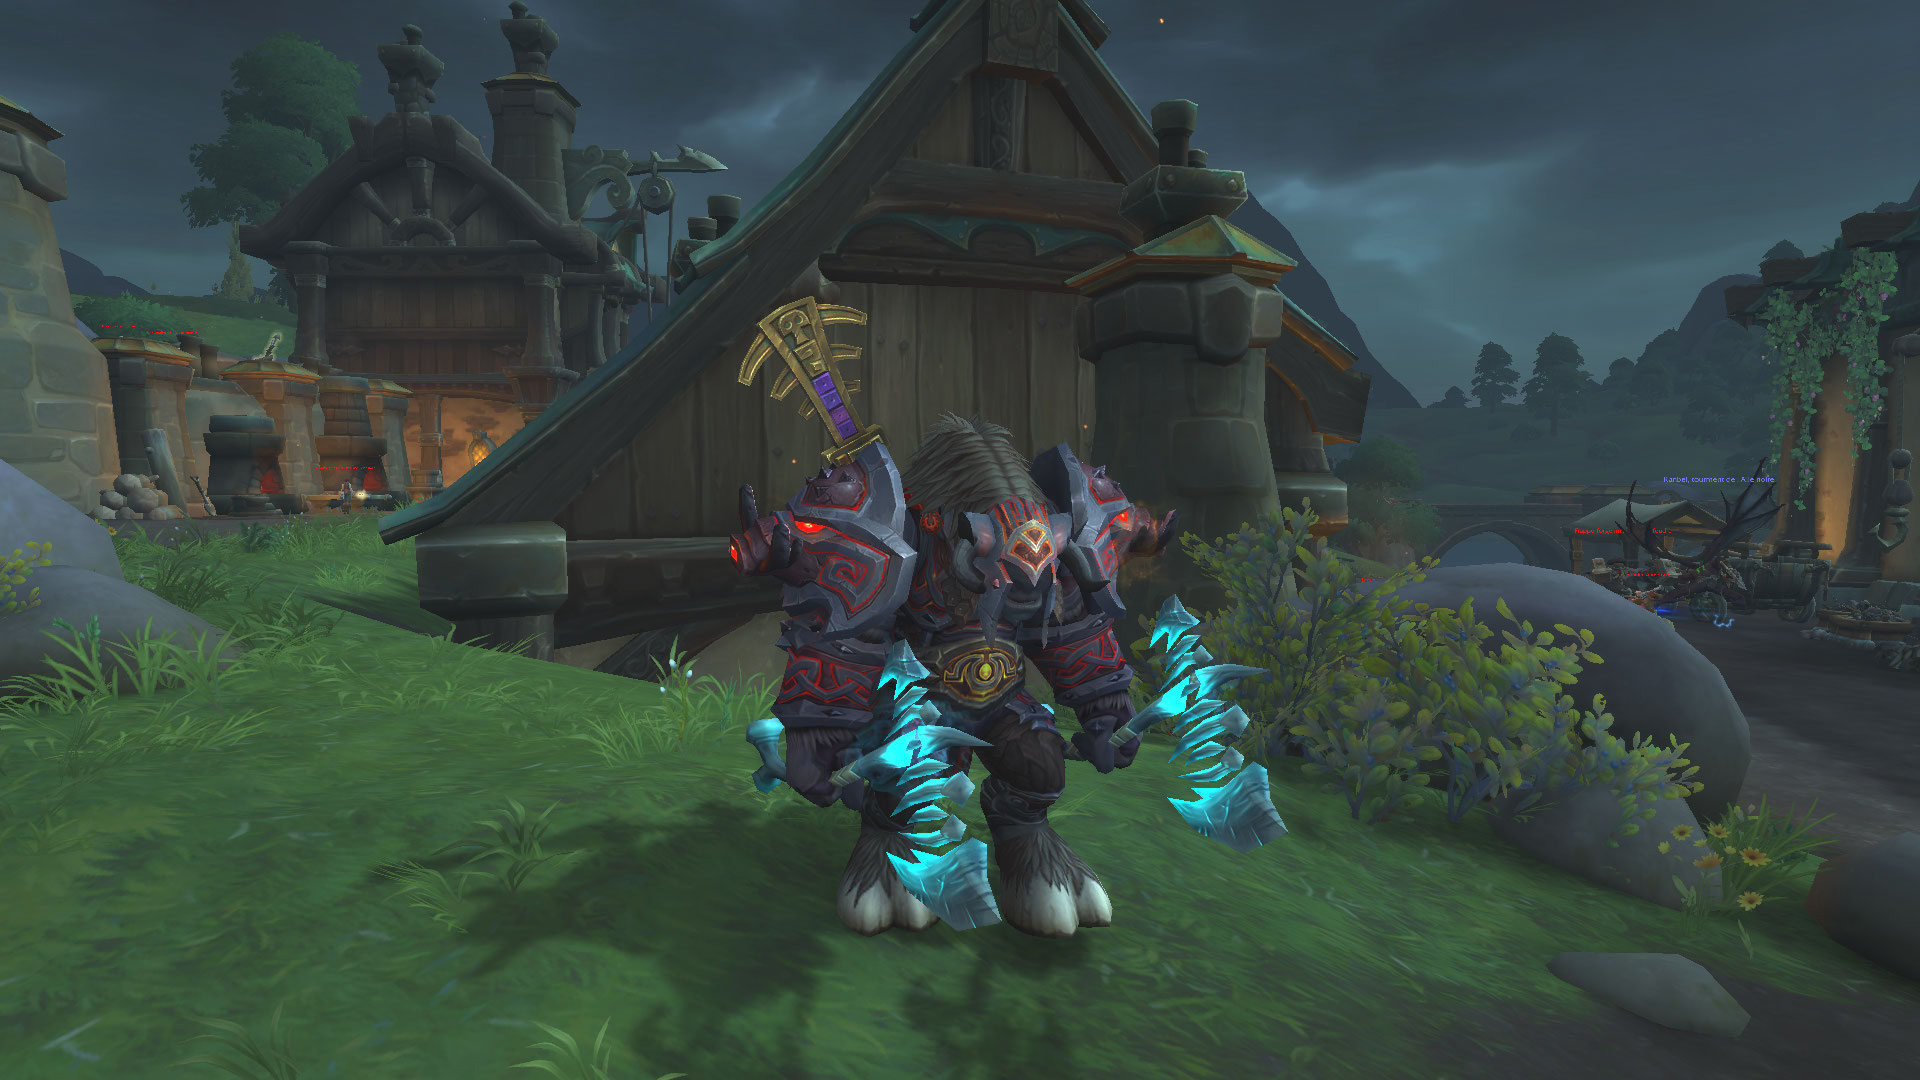 Screenshot de World of Warcraft: Battle for Azeroth réalisé par Clad49.